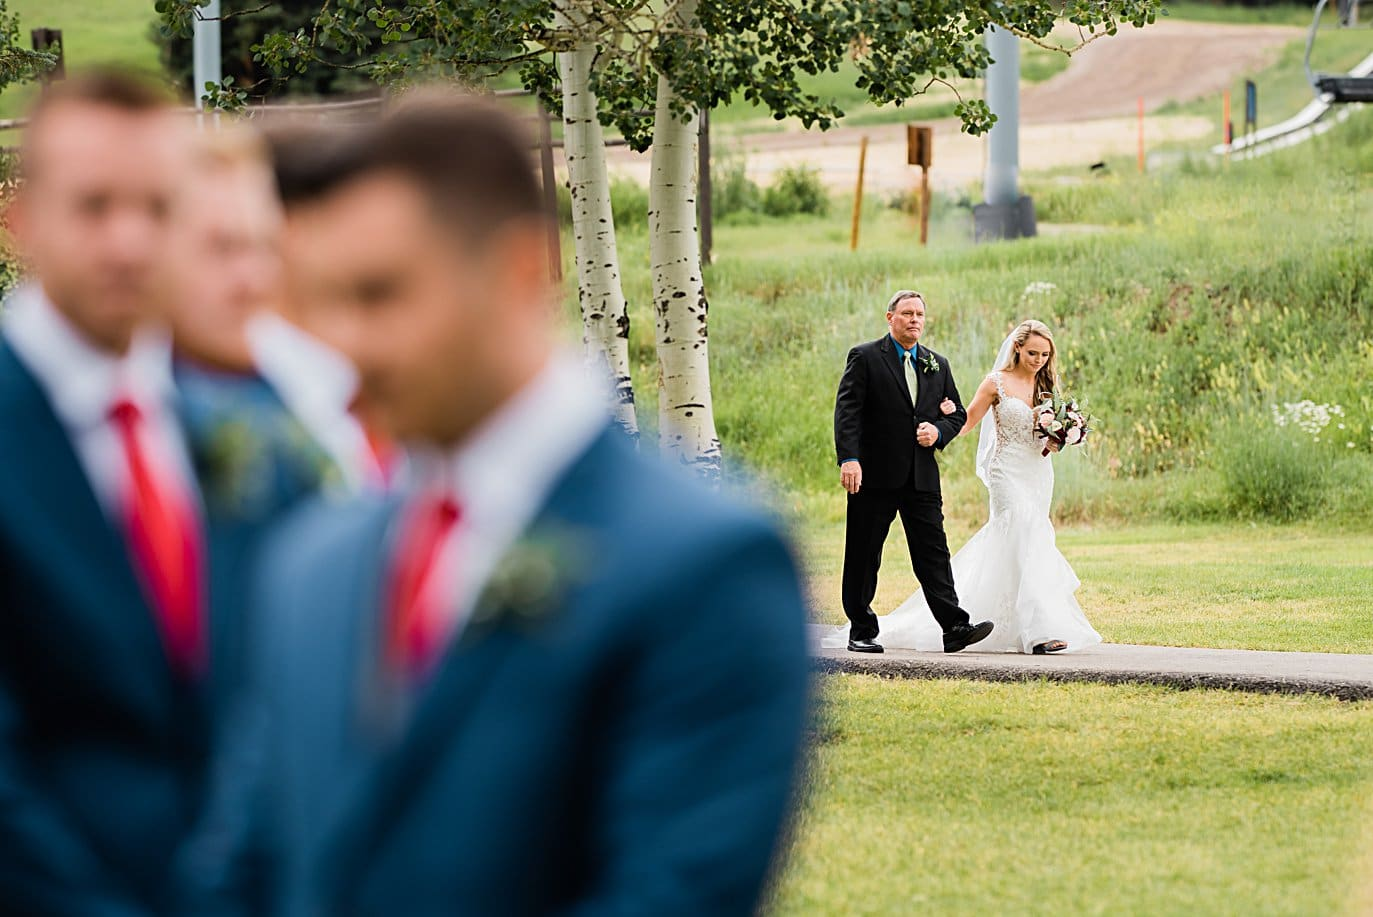 bride and father approach wedding ceremony at Larkspur Vail Wedding by Lyons Wedding photographer Jennie Crate